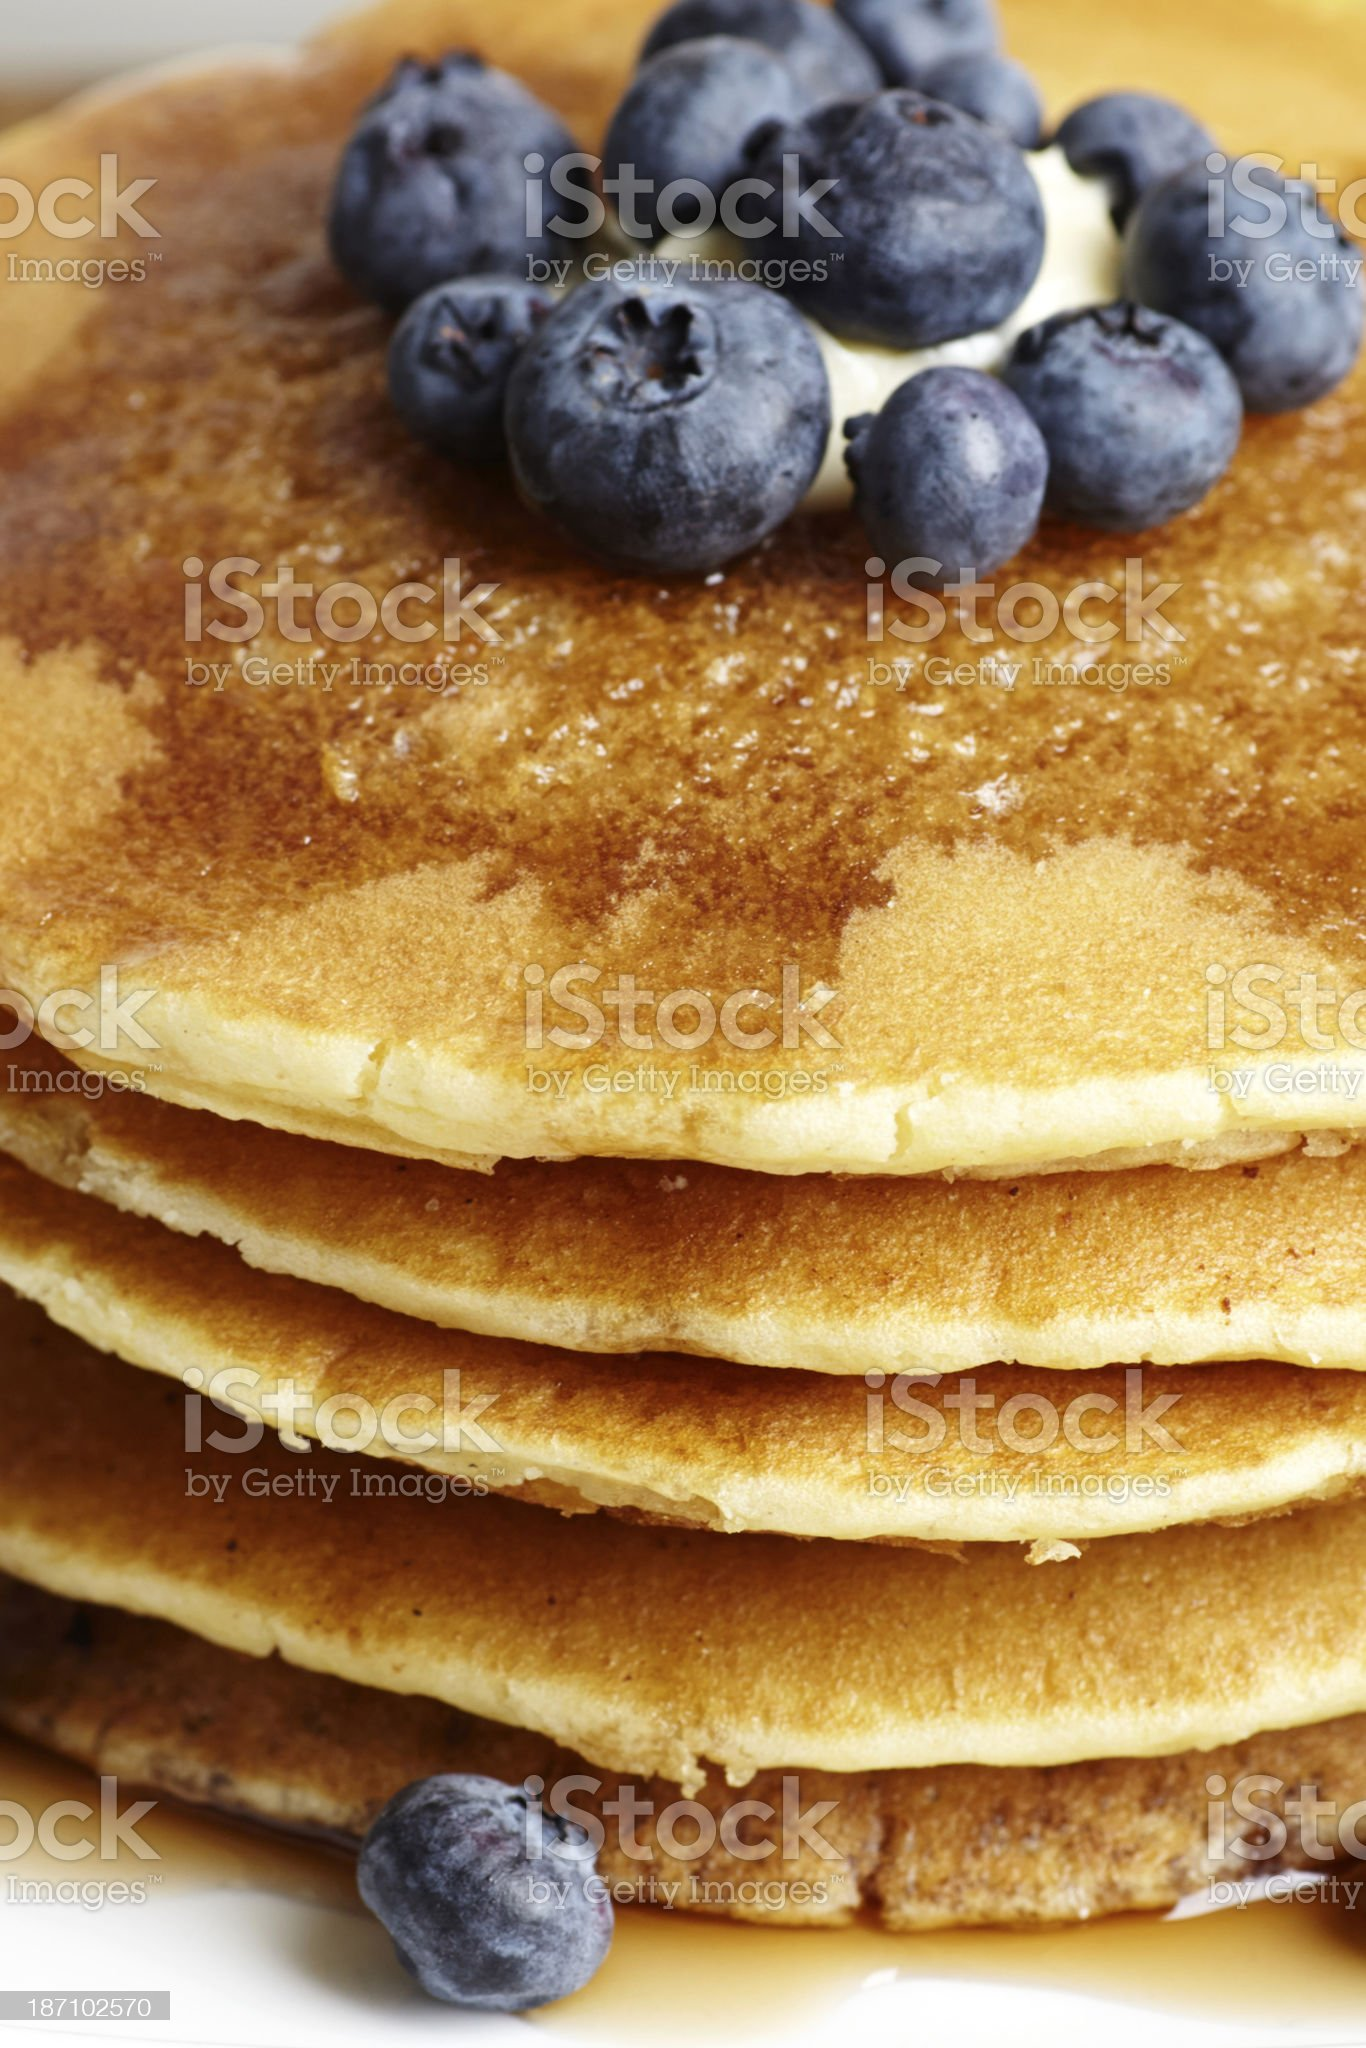 Pancakes with blueberries close-up royalty-free stock photo